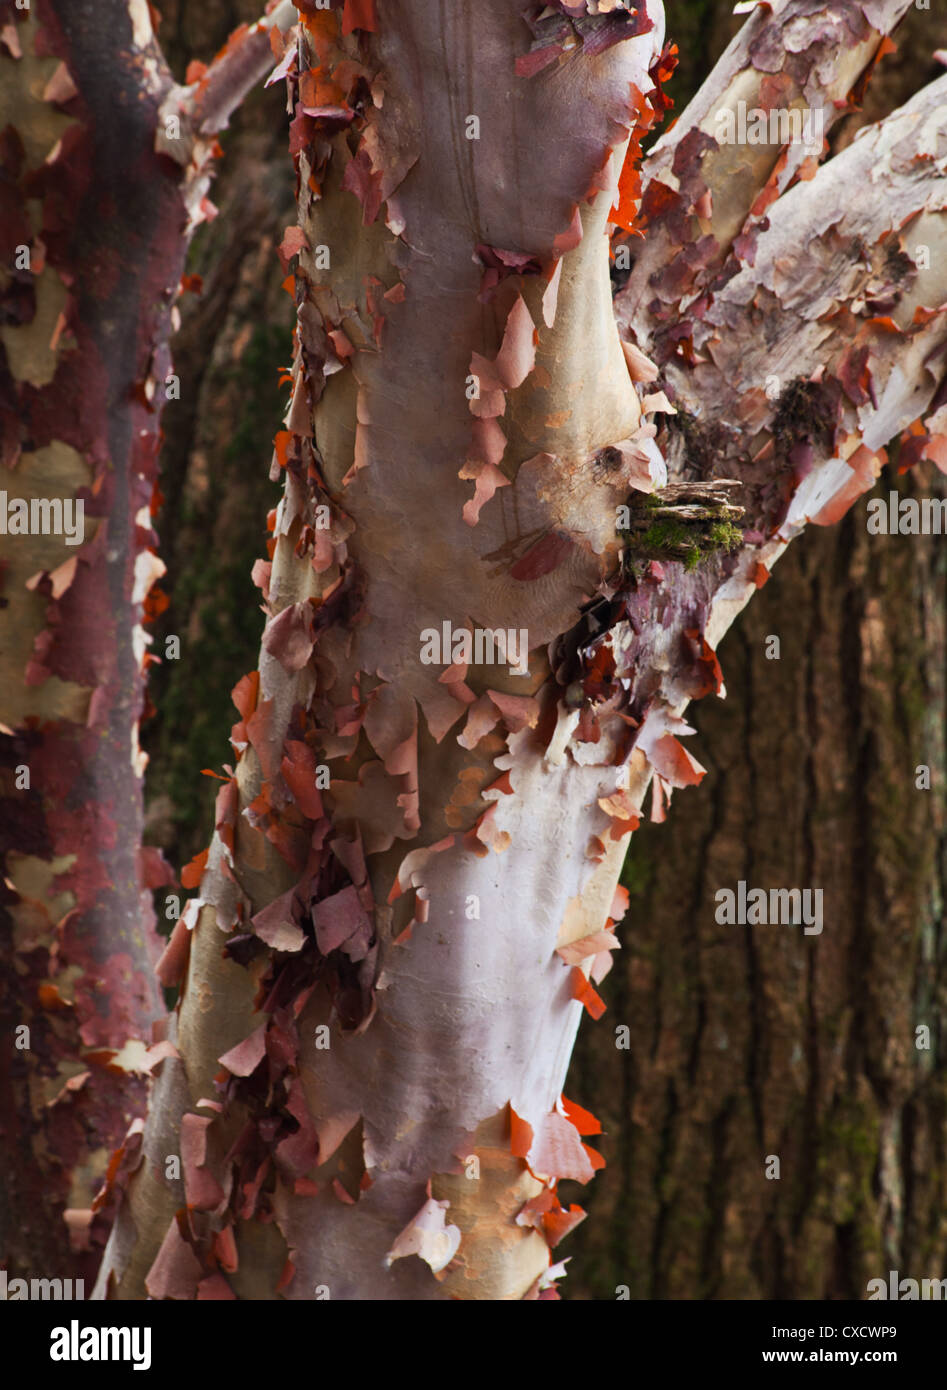 Bark on a Rhododendron tree, Rhododendron arboreum, Nepal - Stock Image